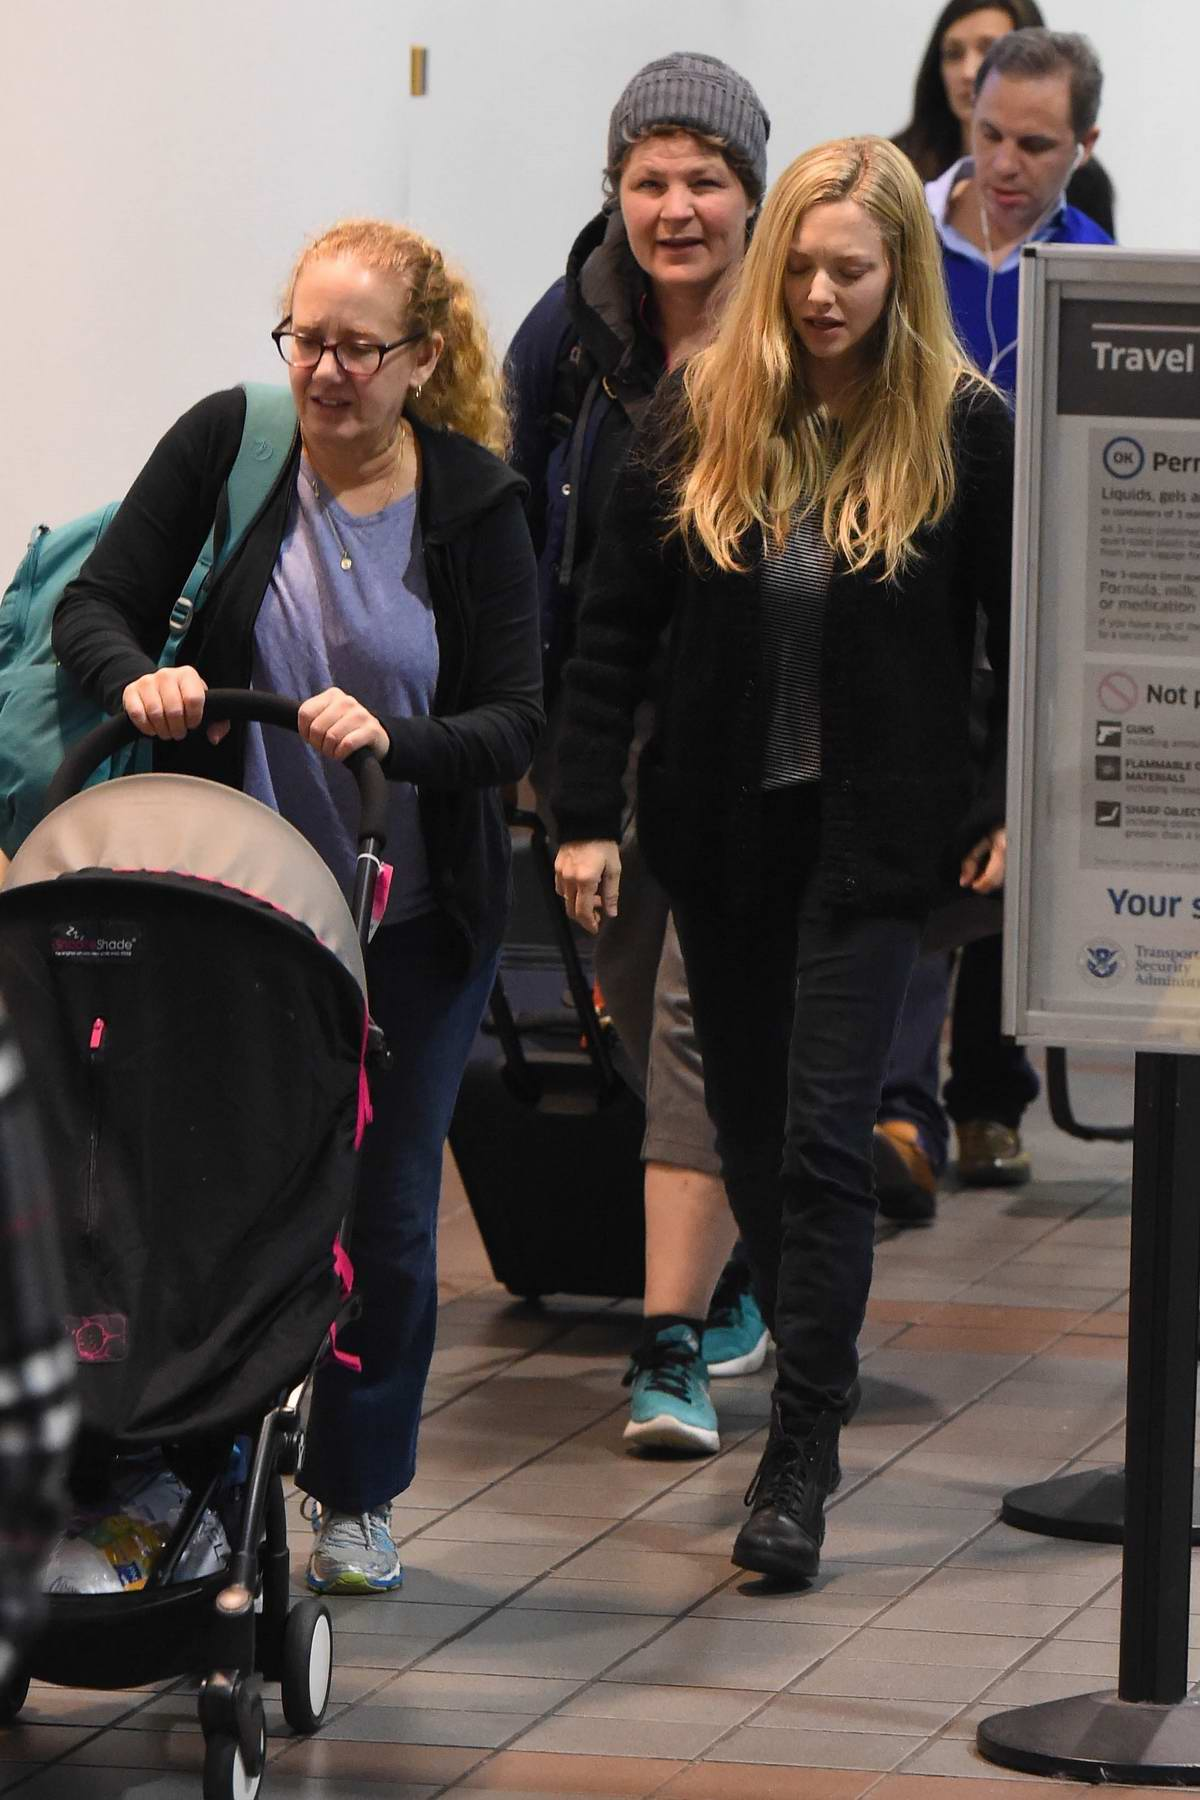 Amanda Seyfried arriving at LAX airport in Los Angeles